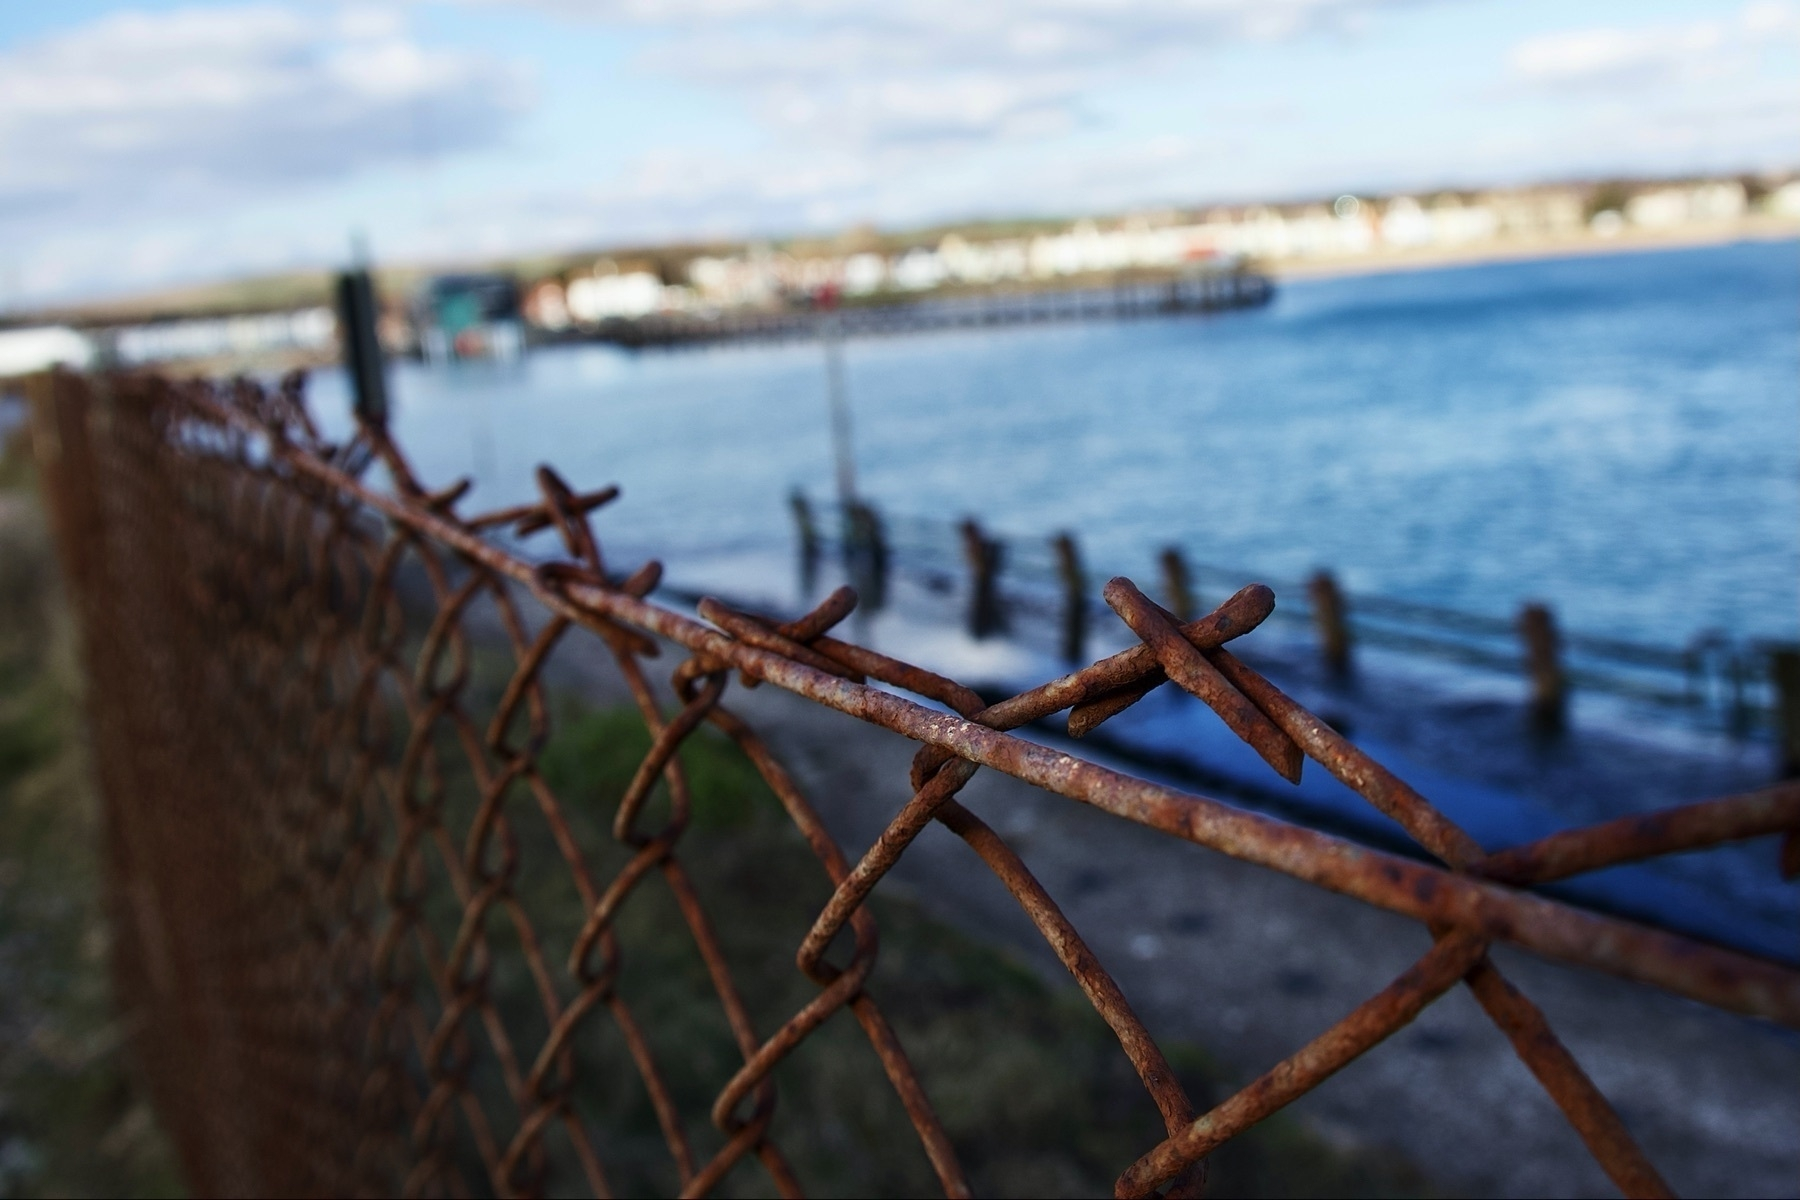 A barbed wire fence blocking access to the water's edge on Shoreham Beach.